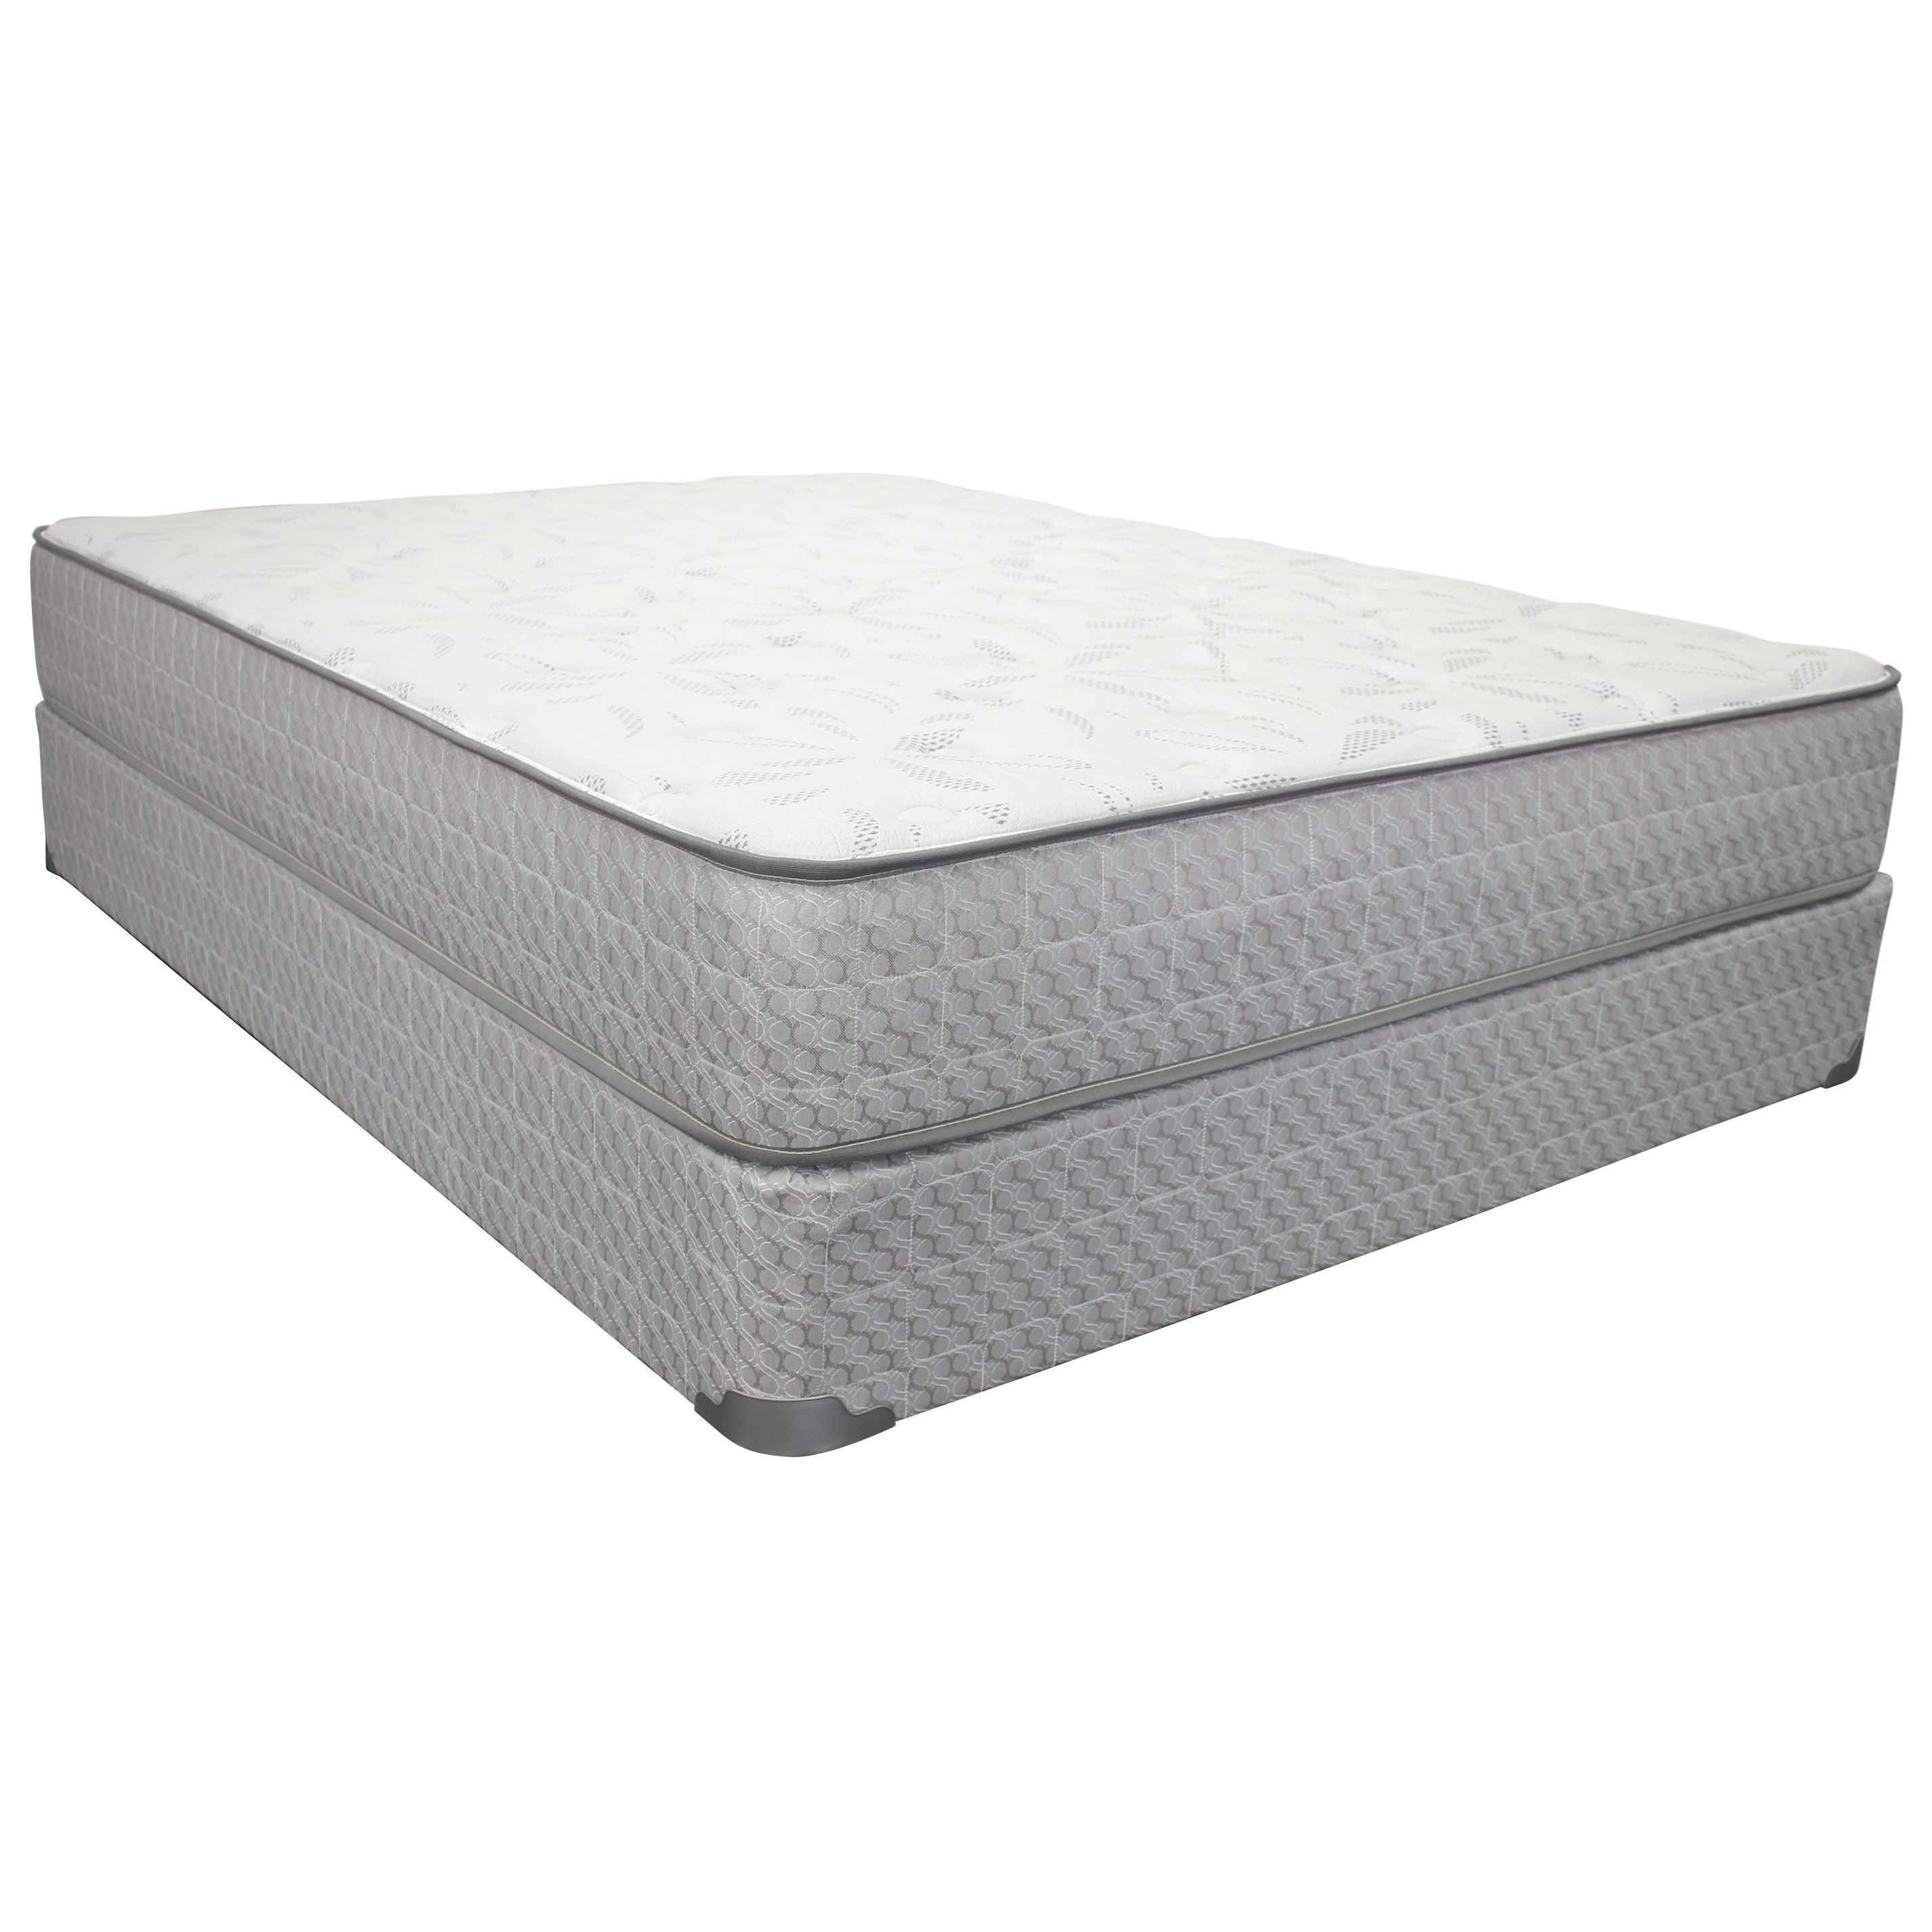 "Twin 10 1/2"" Plush Innerspring Mattress Set"